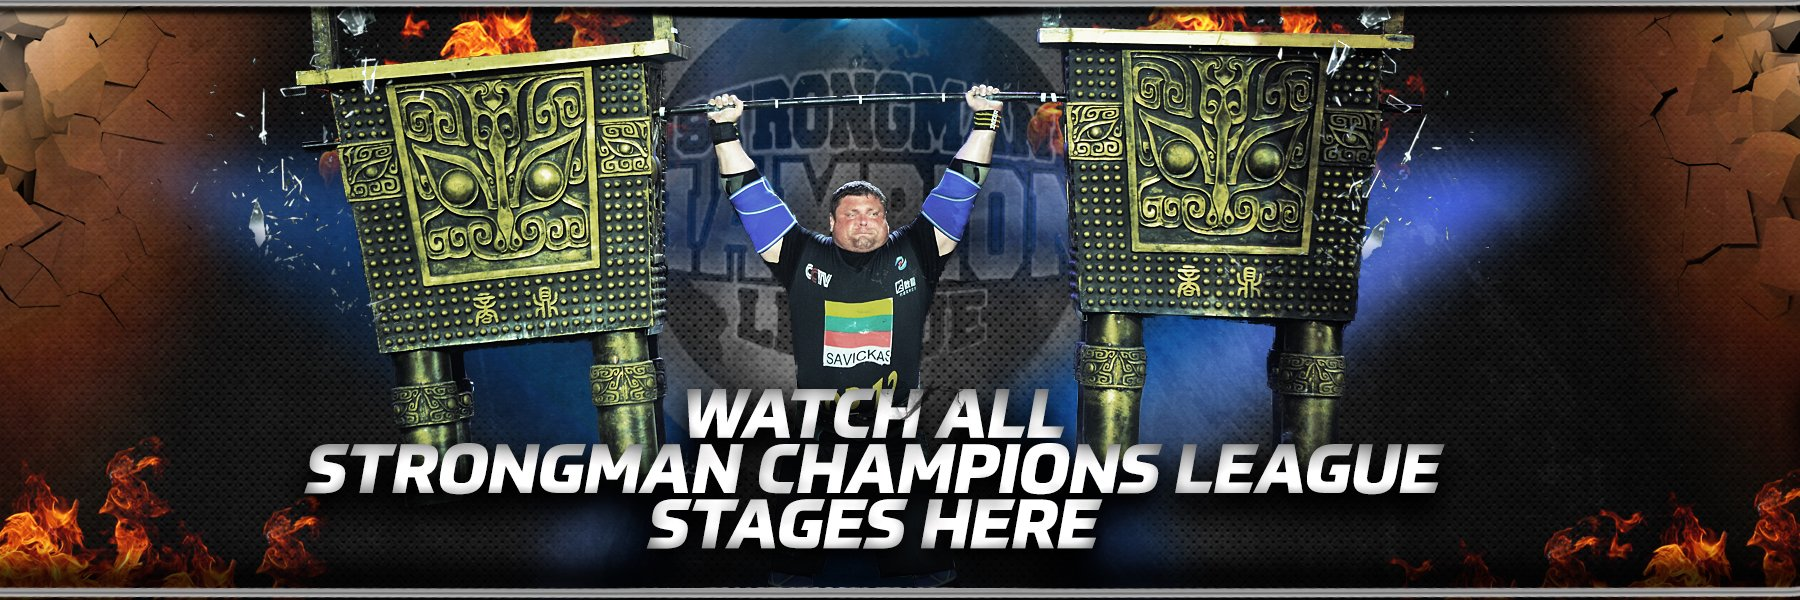 STRONGMAN WORLD SERIES | Watch us! Anytime , Anywhere , All over the World!             | Watch Online Videos for Just $7.95